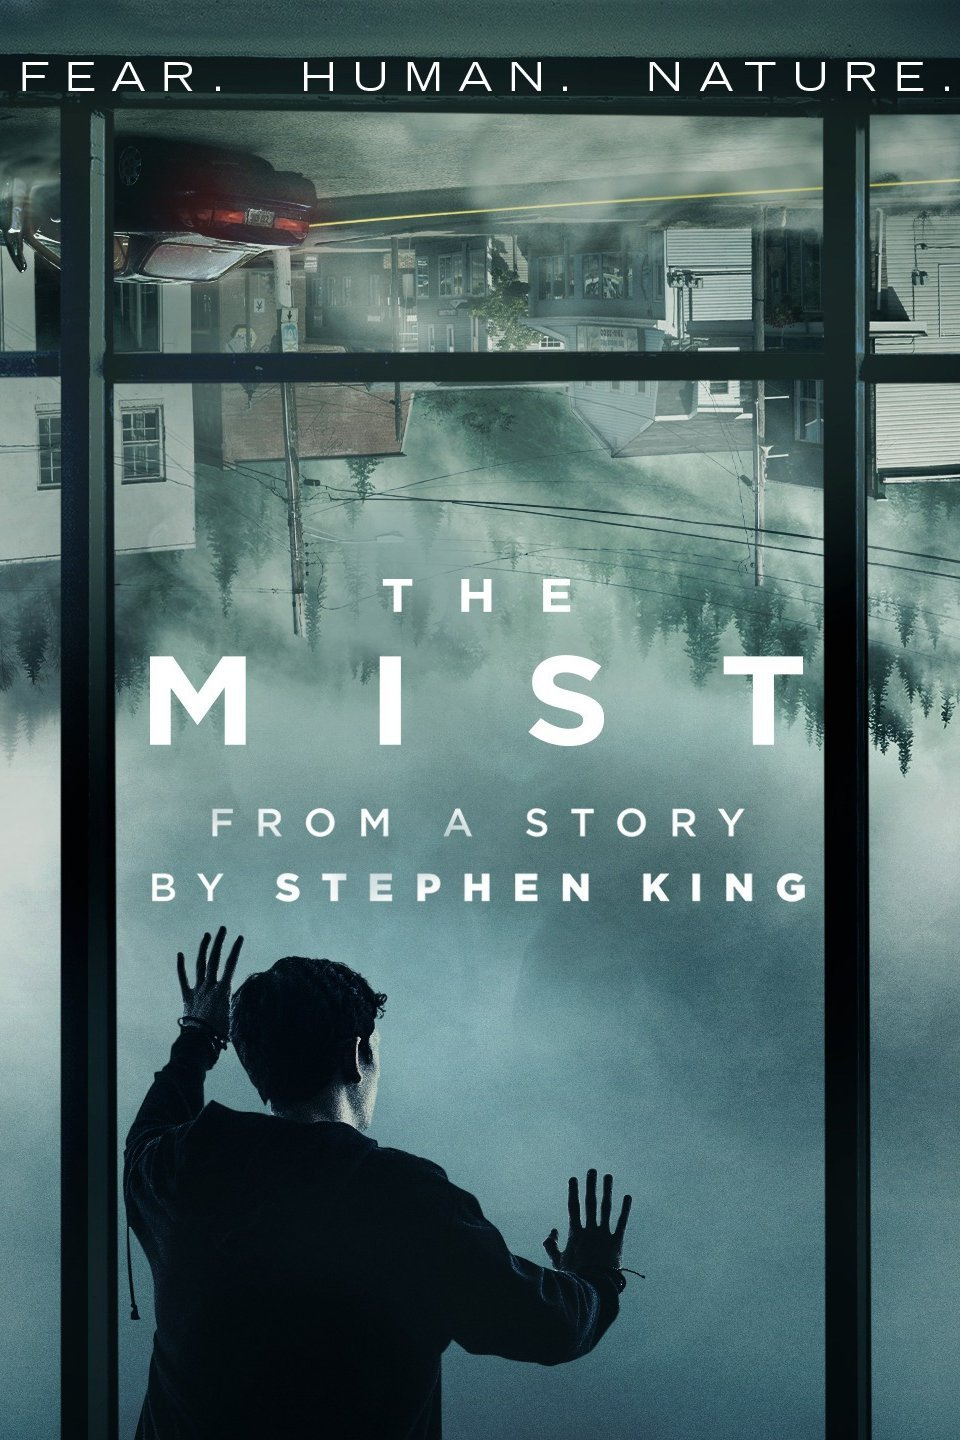 The Mist Season 1 Episode 9 HDTV Micromkv